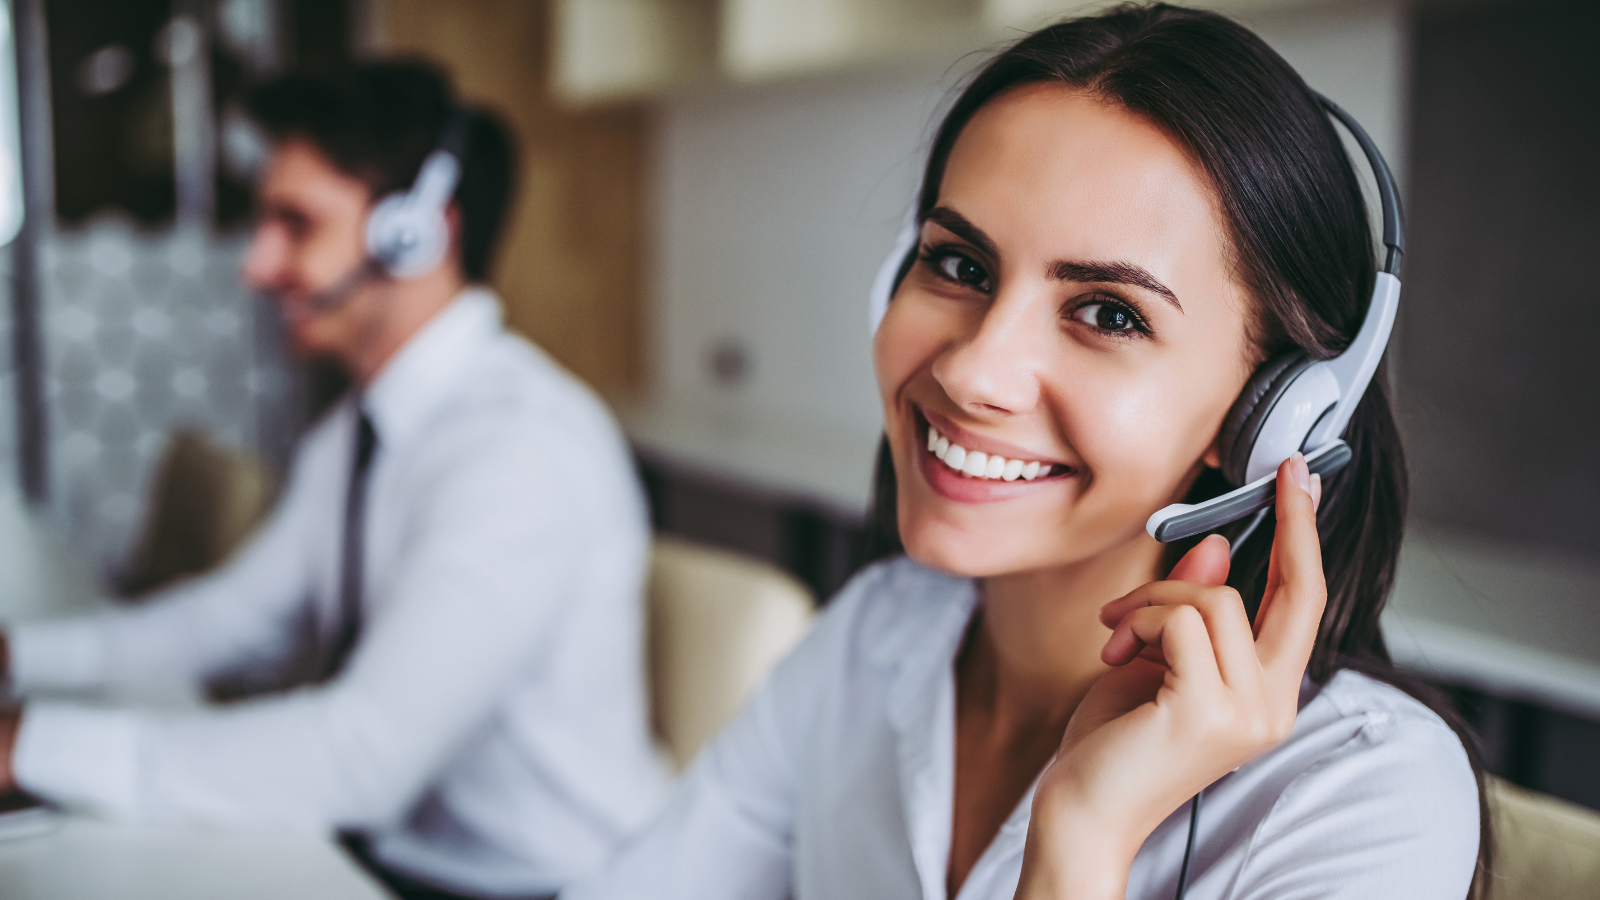 Taking card details over the phone: how to keep your customers data safe